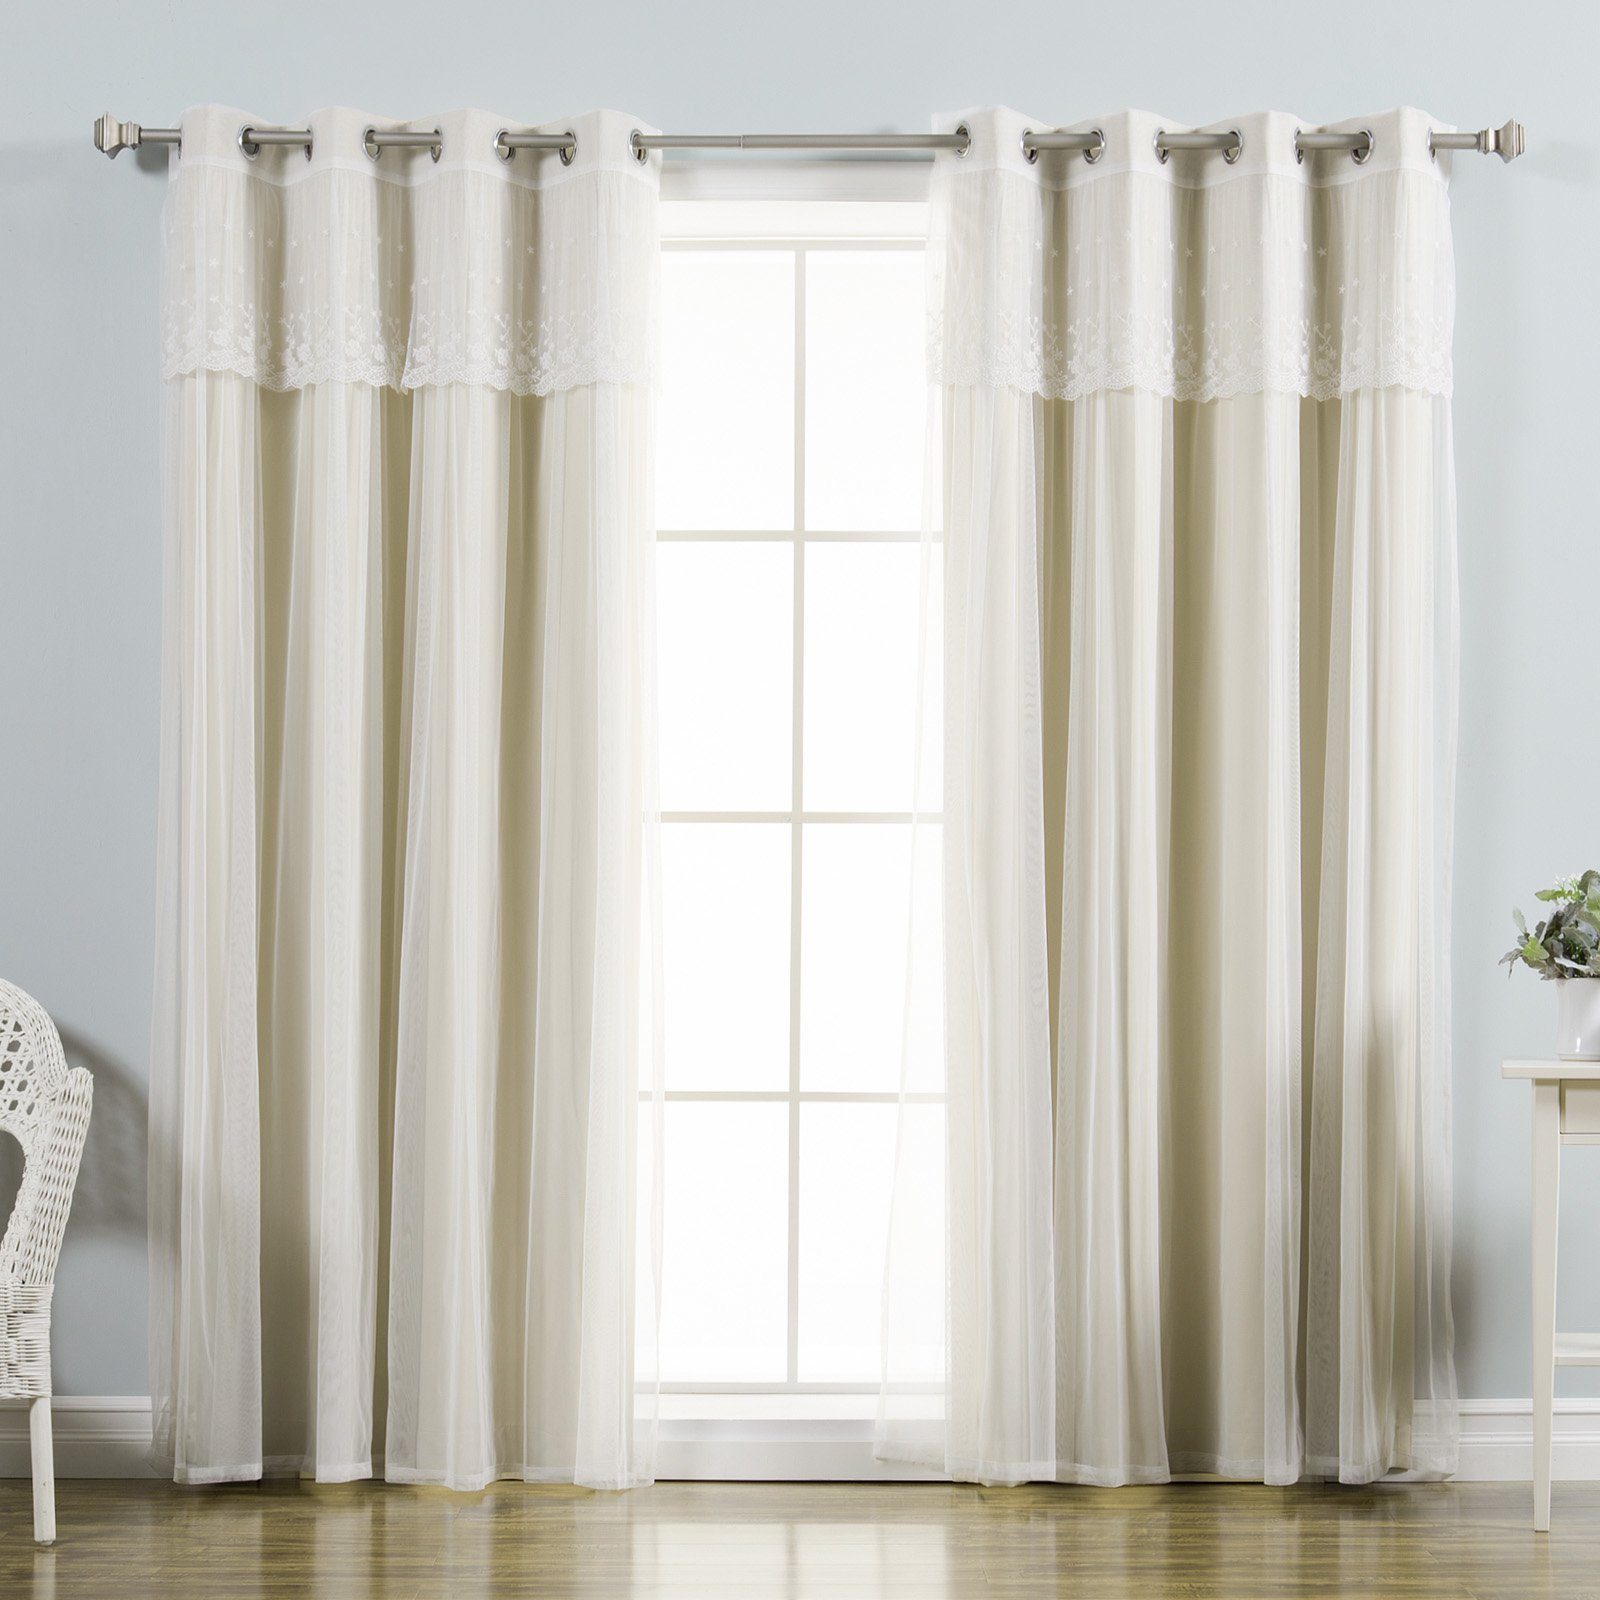 Aurora Home Mix & Match Tulle Sheer With Attached Valance And Blackout 4 Piece Curtain Panel Pair Regarding Well Known Tulle Sheer With Attached Valance And Blackout 4 Piece Curtain Panel Pairs (View 19 of 20)